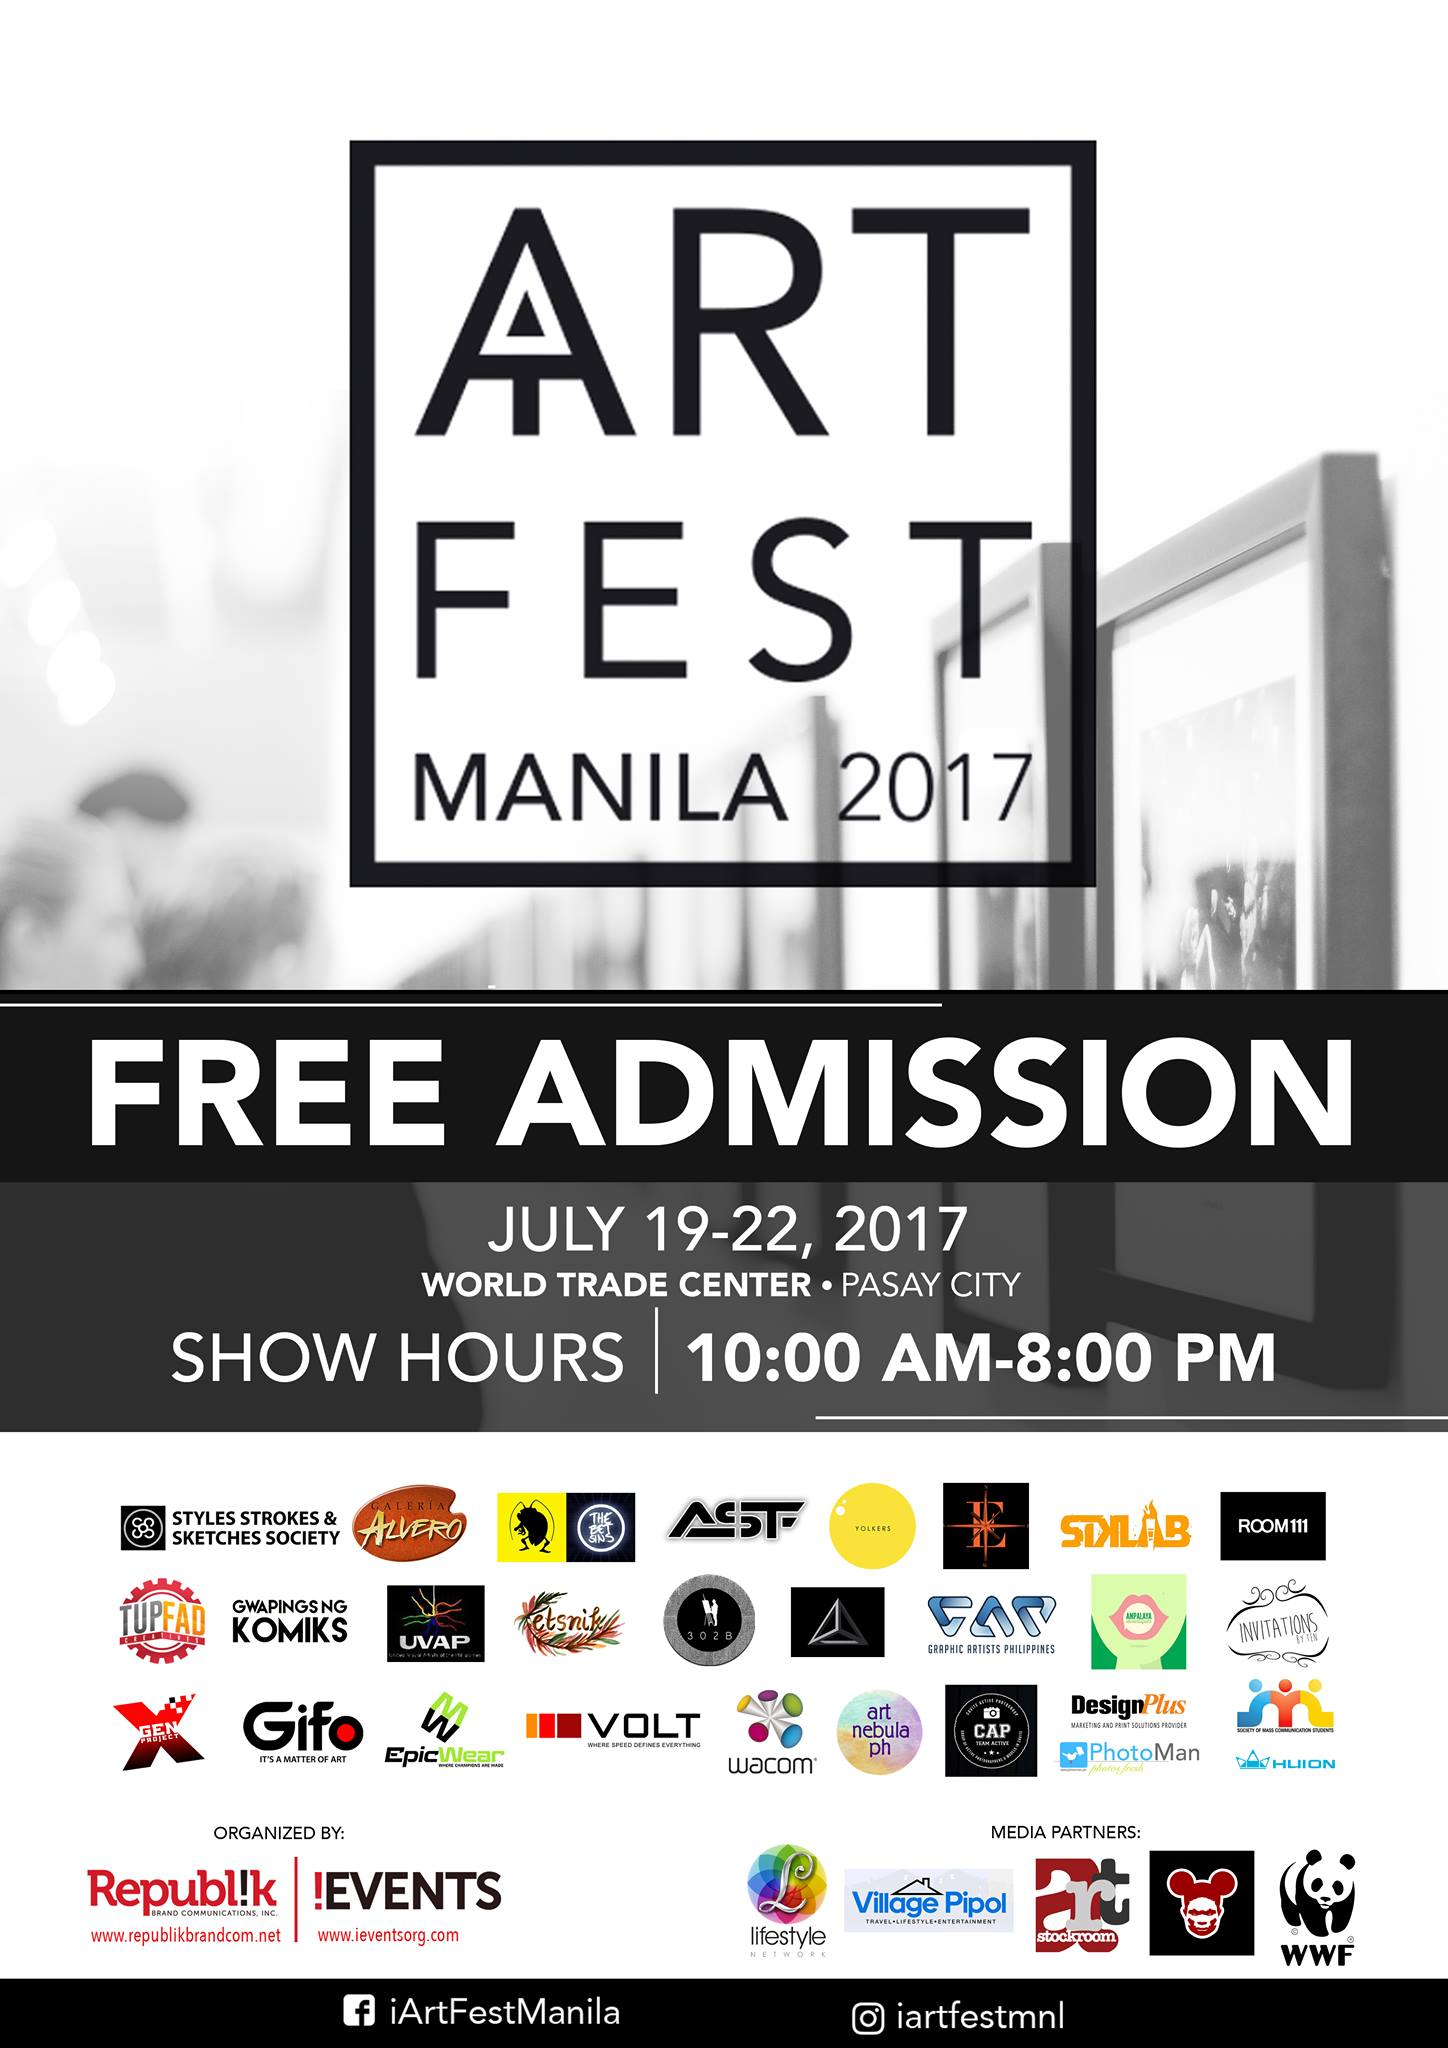 I Art Fest Manila Like This Page · July 11 · Inspired by the abilities of truly amazing artists, iART FEST MANILA's spotlights will shine on attractions such as the art gallery, visual arts, photographs, and crafts filling the exhibition hall. Witness how art flows in the blood of our local artists turning into collections of masterpieces! Let iART FEST MANILA take you on a visual journey from the blank canvas to enthralling works of art creating massive masterpieces of all genres! Inspired by the abilities of truly amazing artists, iART FEST MANILA's spotlight will shine of facets of art in the country such as art galleries, visual arts, photography, music, and crafts. Participants in the event include Ismael Figueroa Esber, Kristen Uy Ramos, Rick Armando, Baroyskie Arts, Ernilo Germino, Sam Penaso, Mel Araneta, Fredi Agunoy, Joanna Liza, Kuatro Kantos, GWAPINGS NG KOMIKS, SIKLAB, 302B, Levi Batara, Marlon Lucenara, Jo Anna Vocalan, Joemarie Sanclaria Chua, Suicidal Genius, Pilipinas Street Plan, Room One Eleven, Graphic Artist Philippines, TUP-FAD Creatives, Betsin-artparasites, STYLES STROKES & SKETCHES SOCIETY, and Yolkers Collab. Visitors can also check out some products of Wacom, Art Nebula, Gifo, and other participating exhibitors. See you this July 19-22 at the World Trade Center Metro Manila, Pasay City! #iArtFestManila #iARTPH